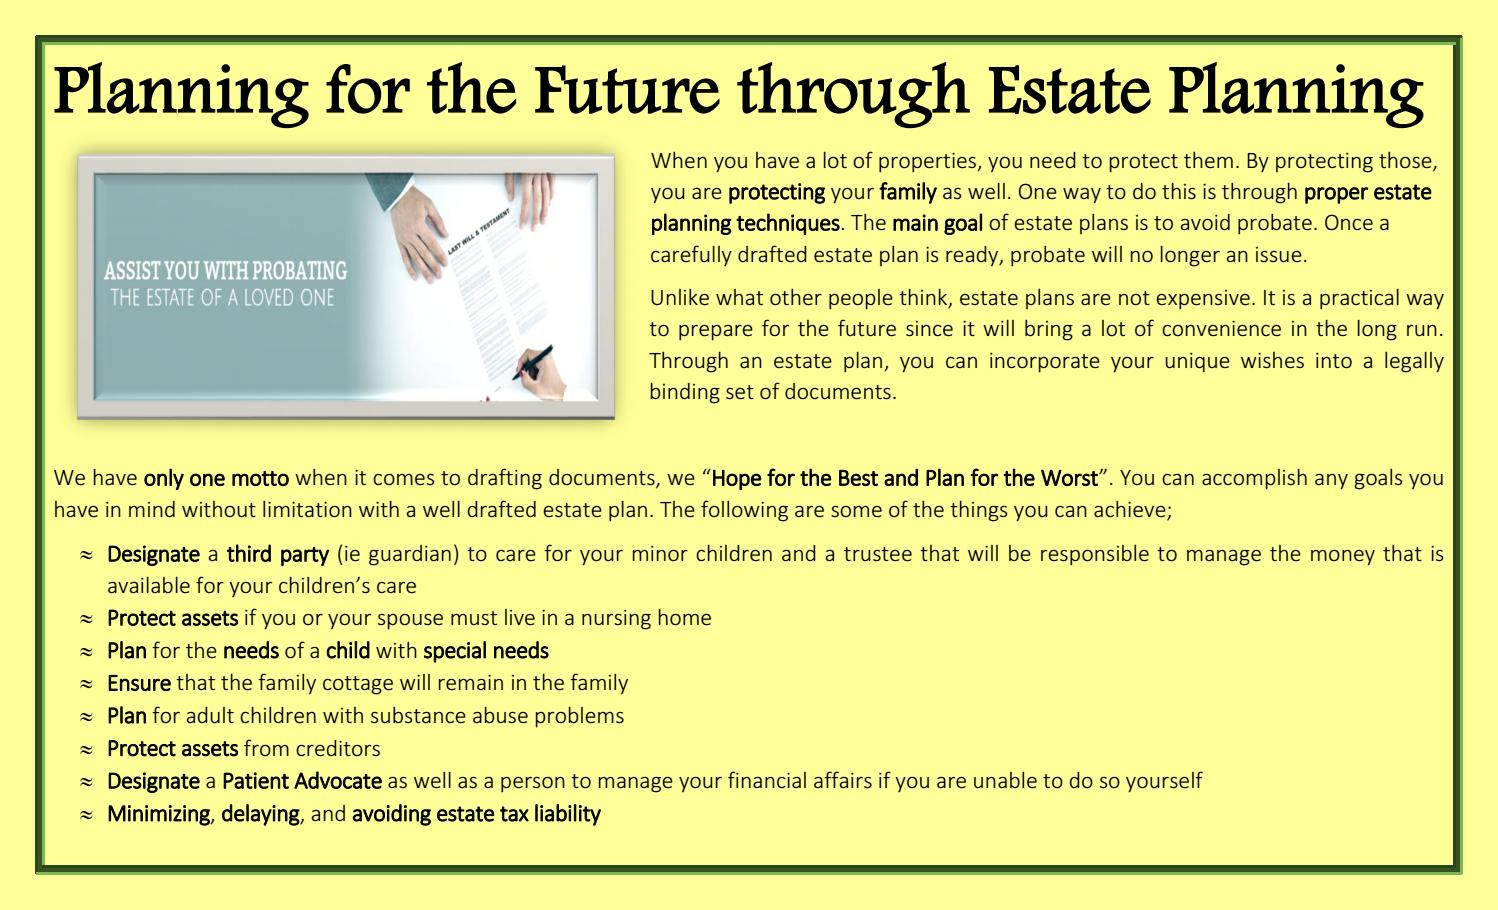 Planning for the future through estate planning by michael van planning for the future through estate planning by michael van tubergen issuu solutioingenieria Images